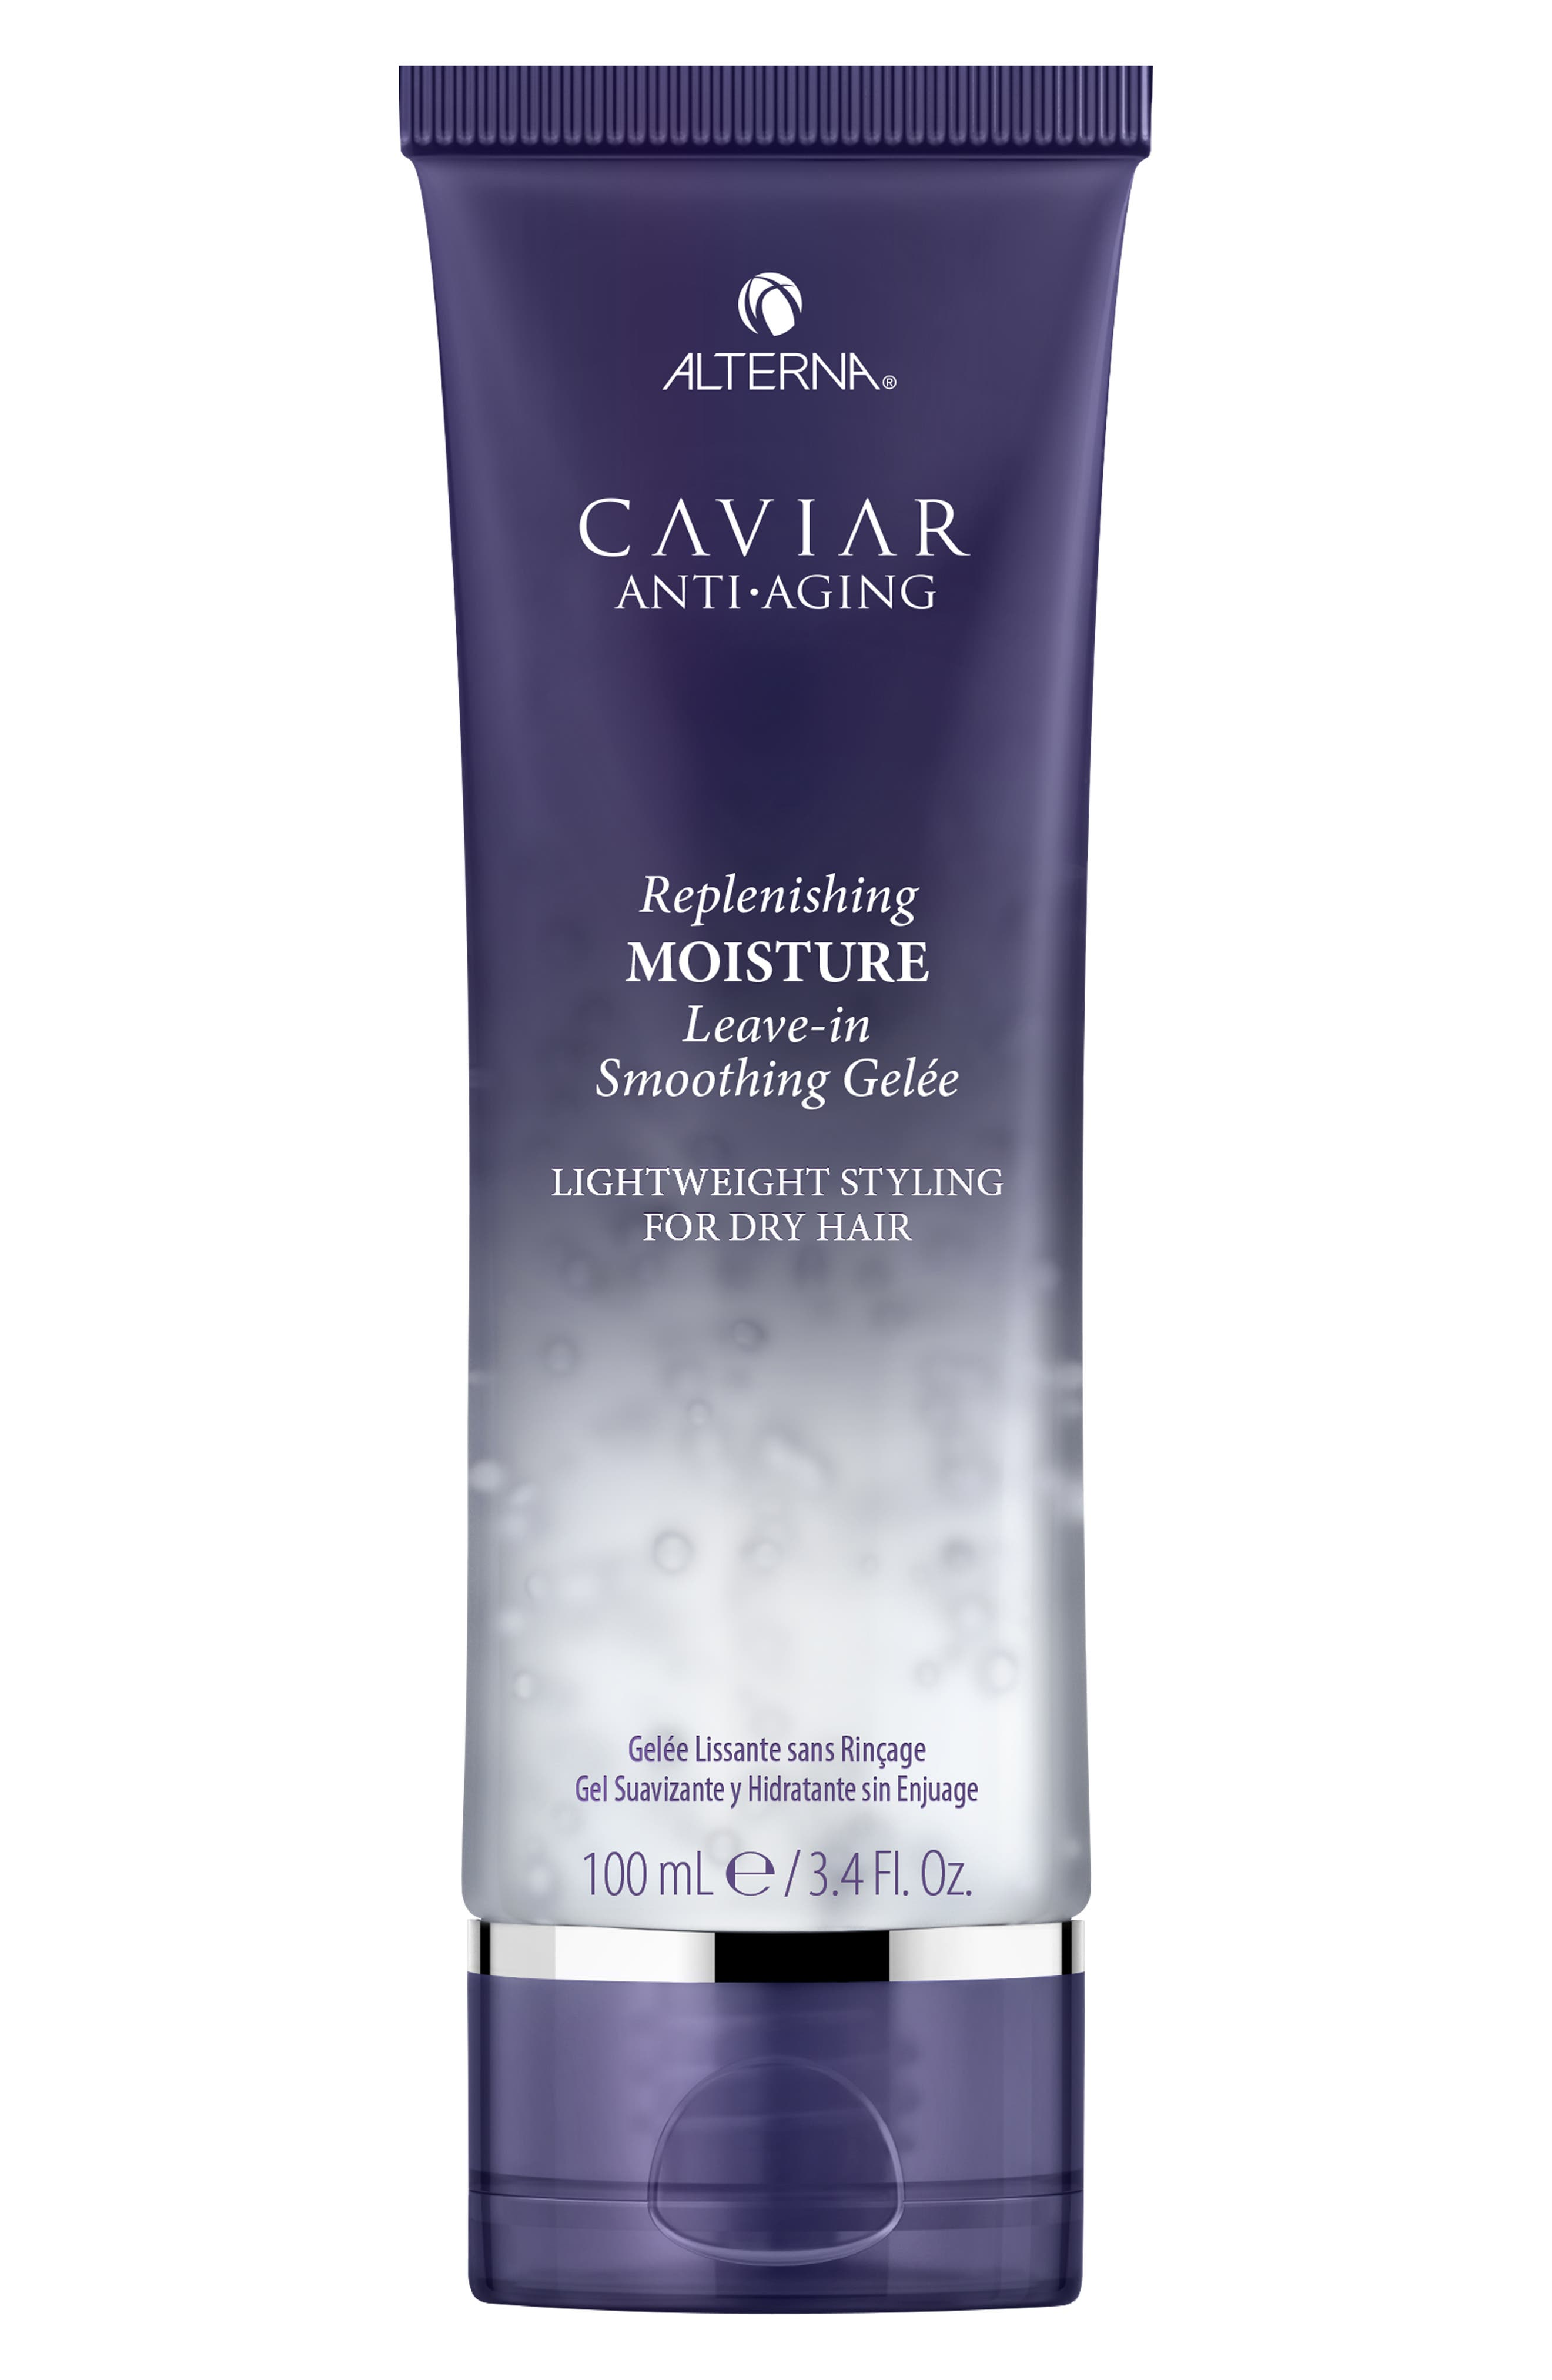 ALTERNA(R) Caviar Anti-Aging Replenishing Moisture Leave-in Smoothing Gelee in No Color at Nordstrom